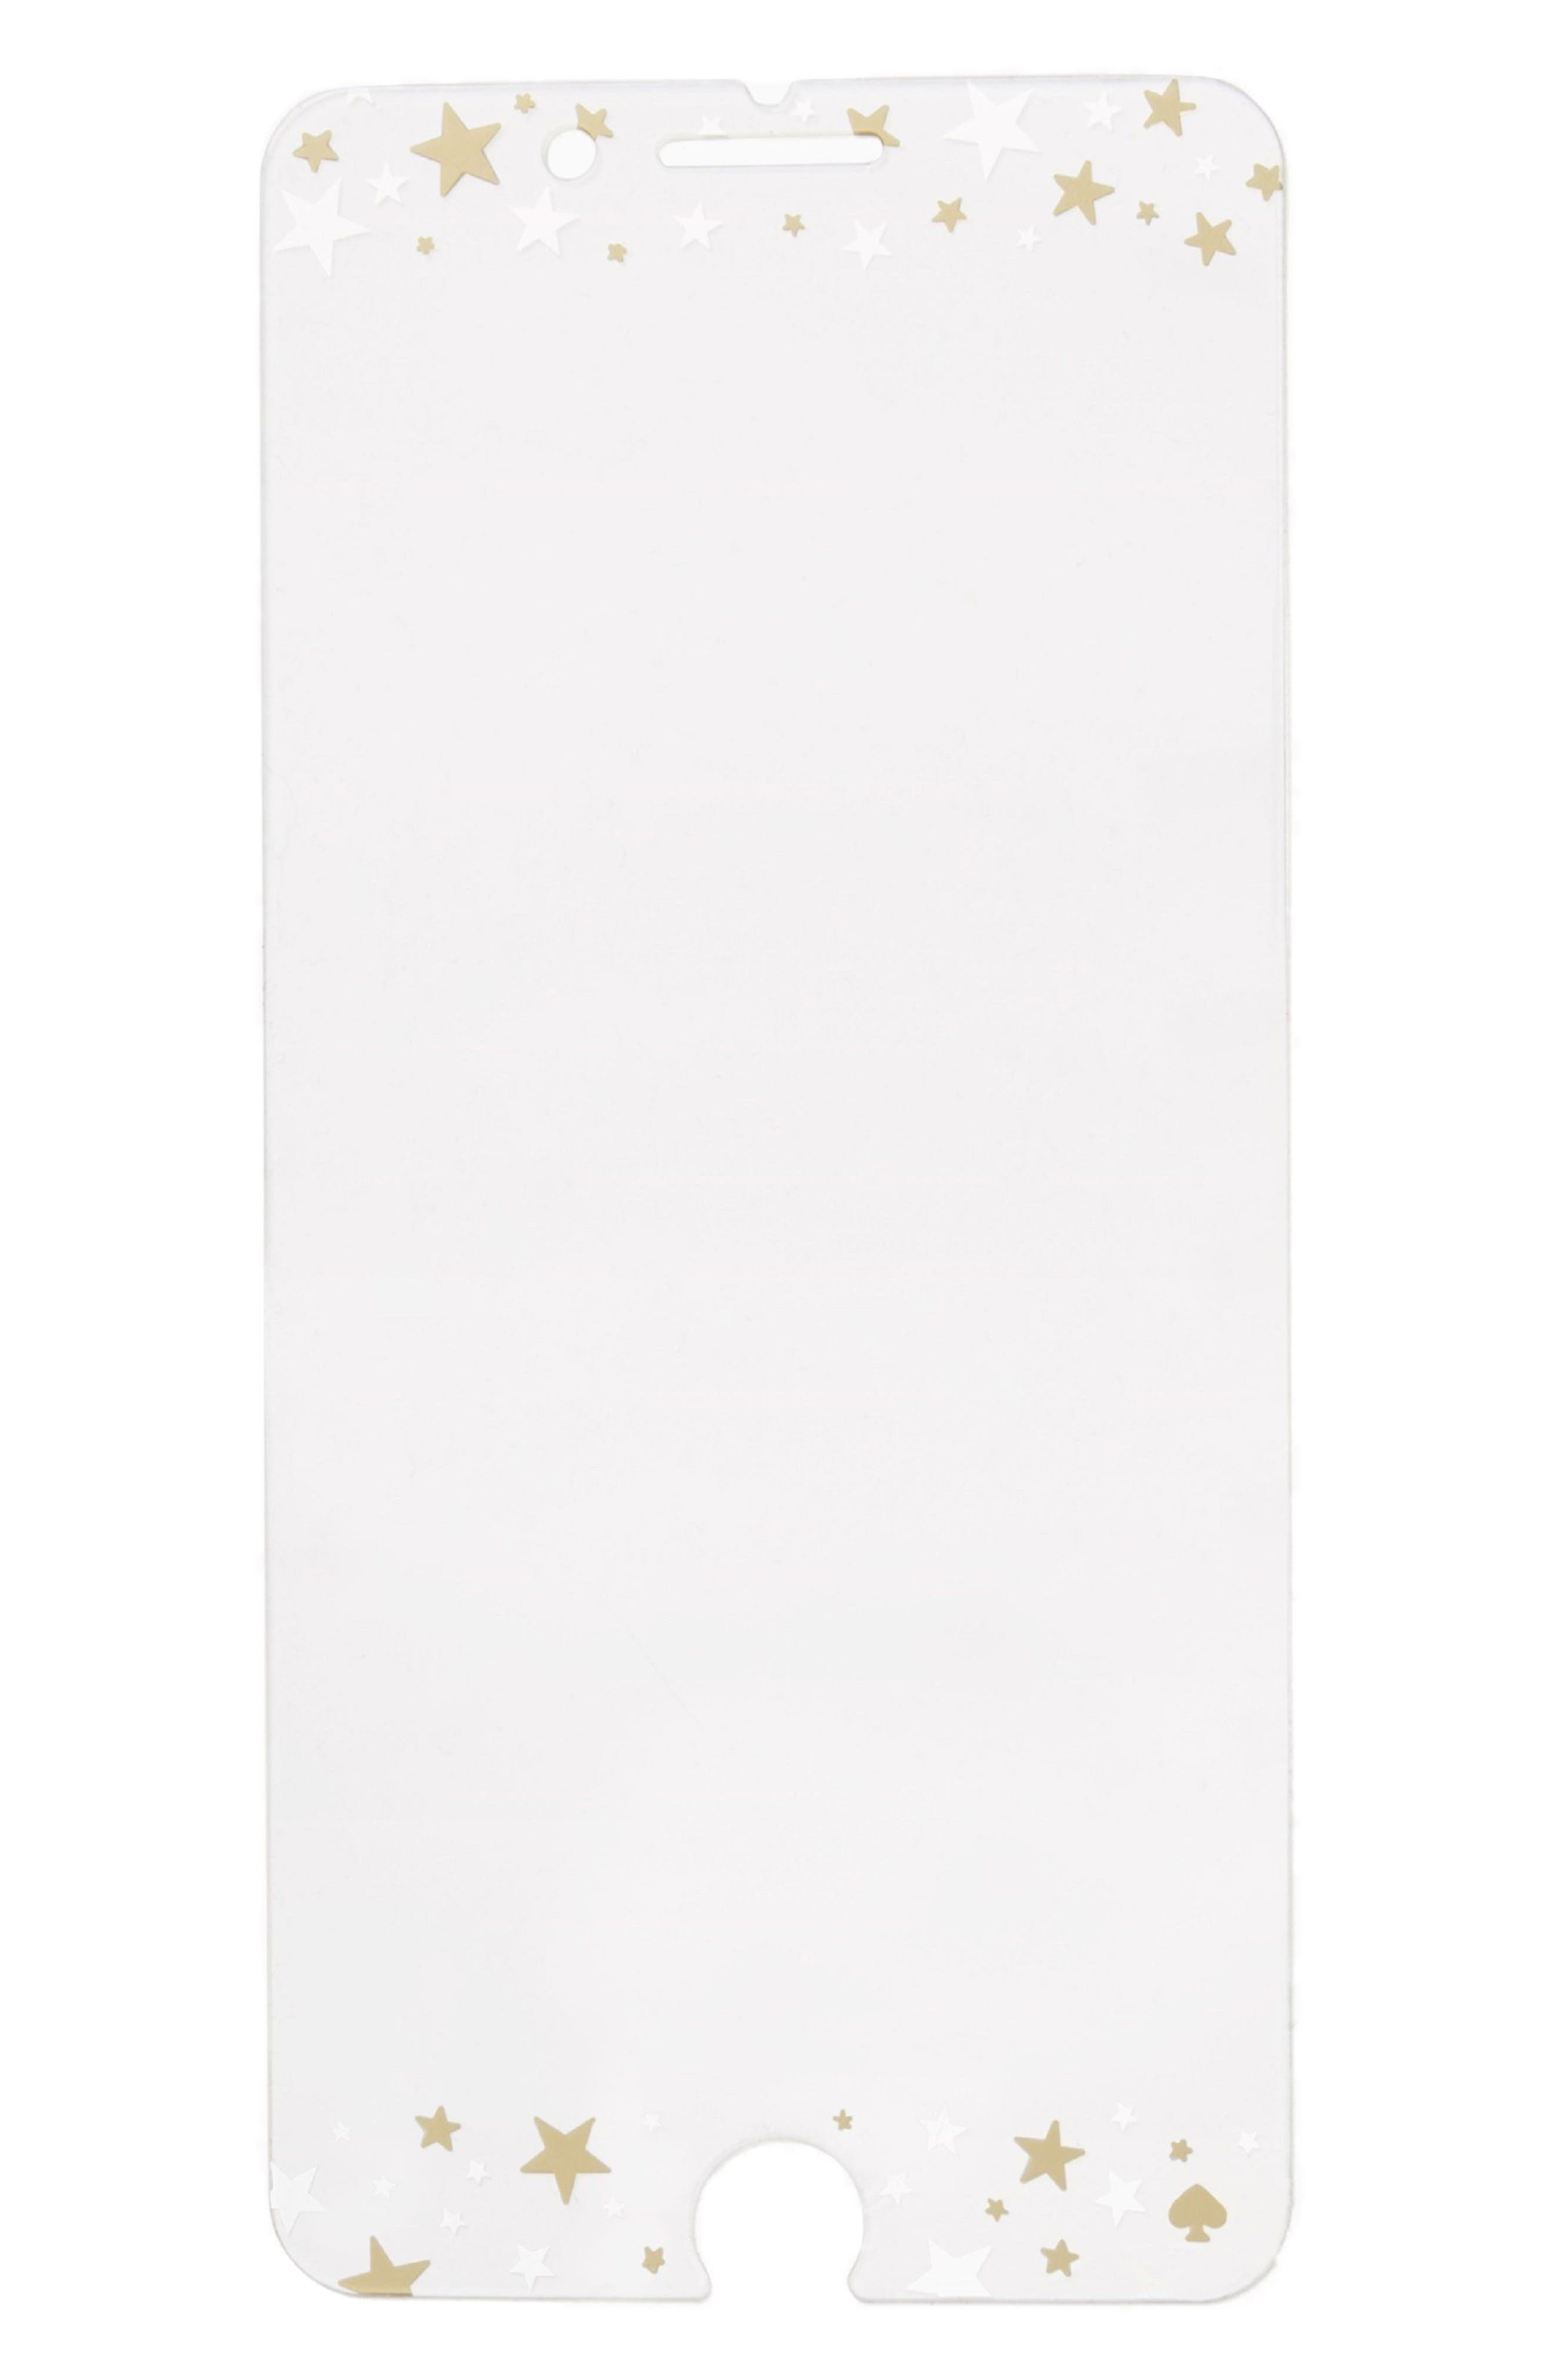 Alternate Image 1 Selected - kate spade new york star screen cover for iPhone 7/8 & 7/8 Plus